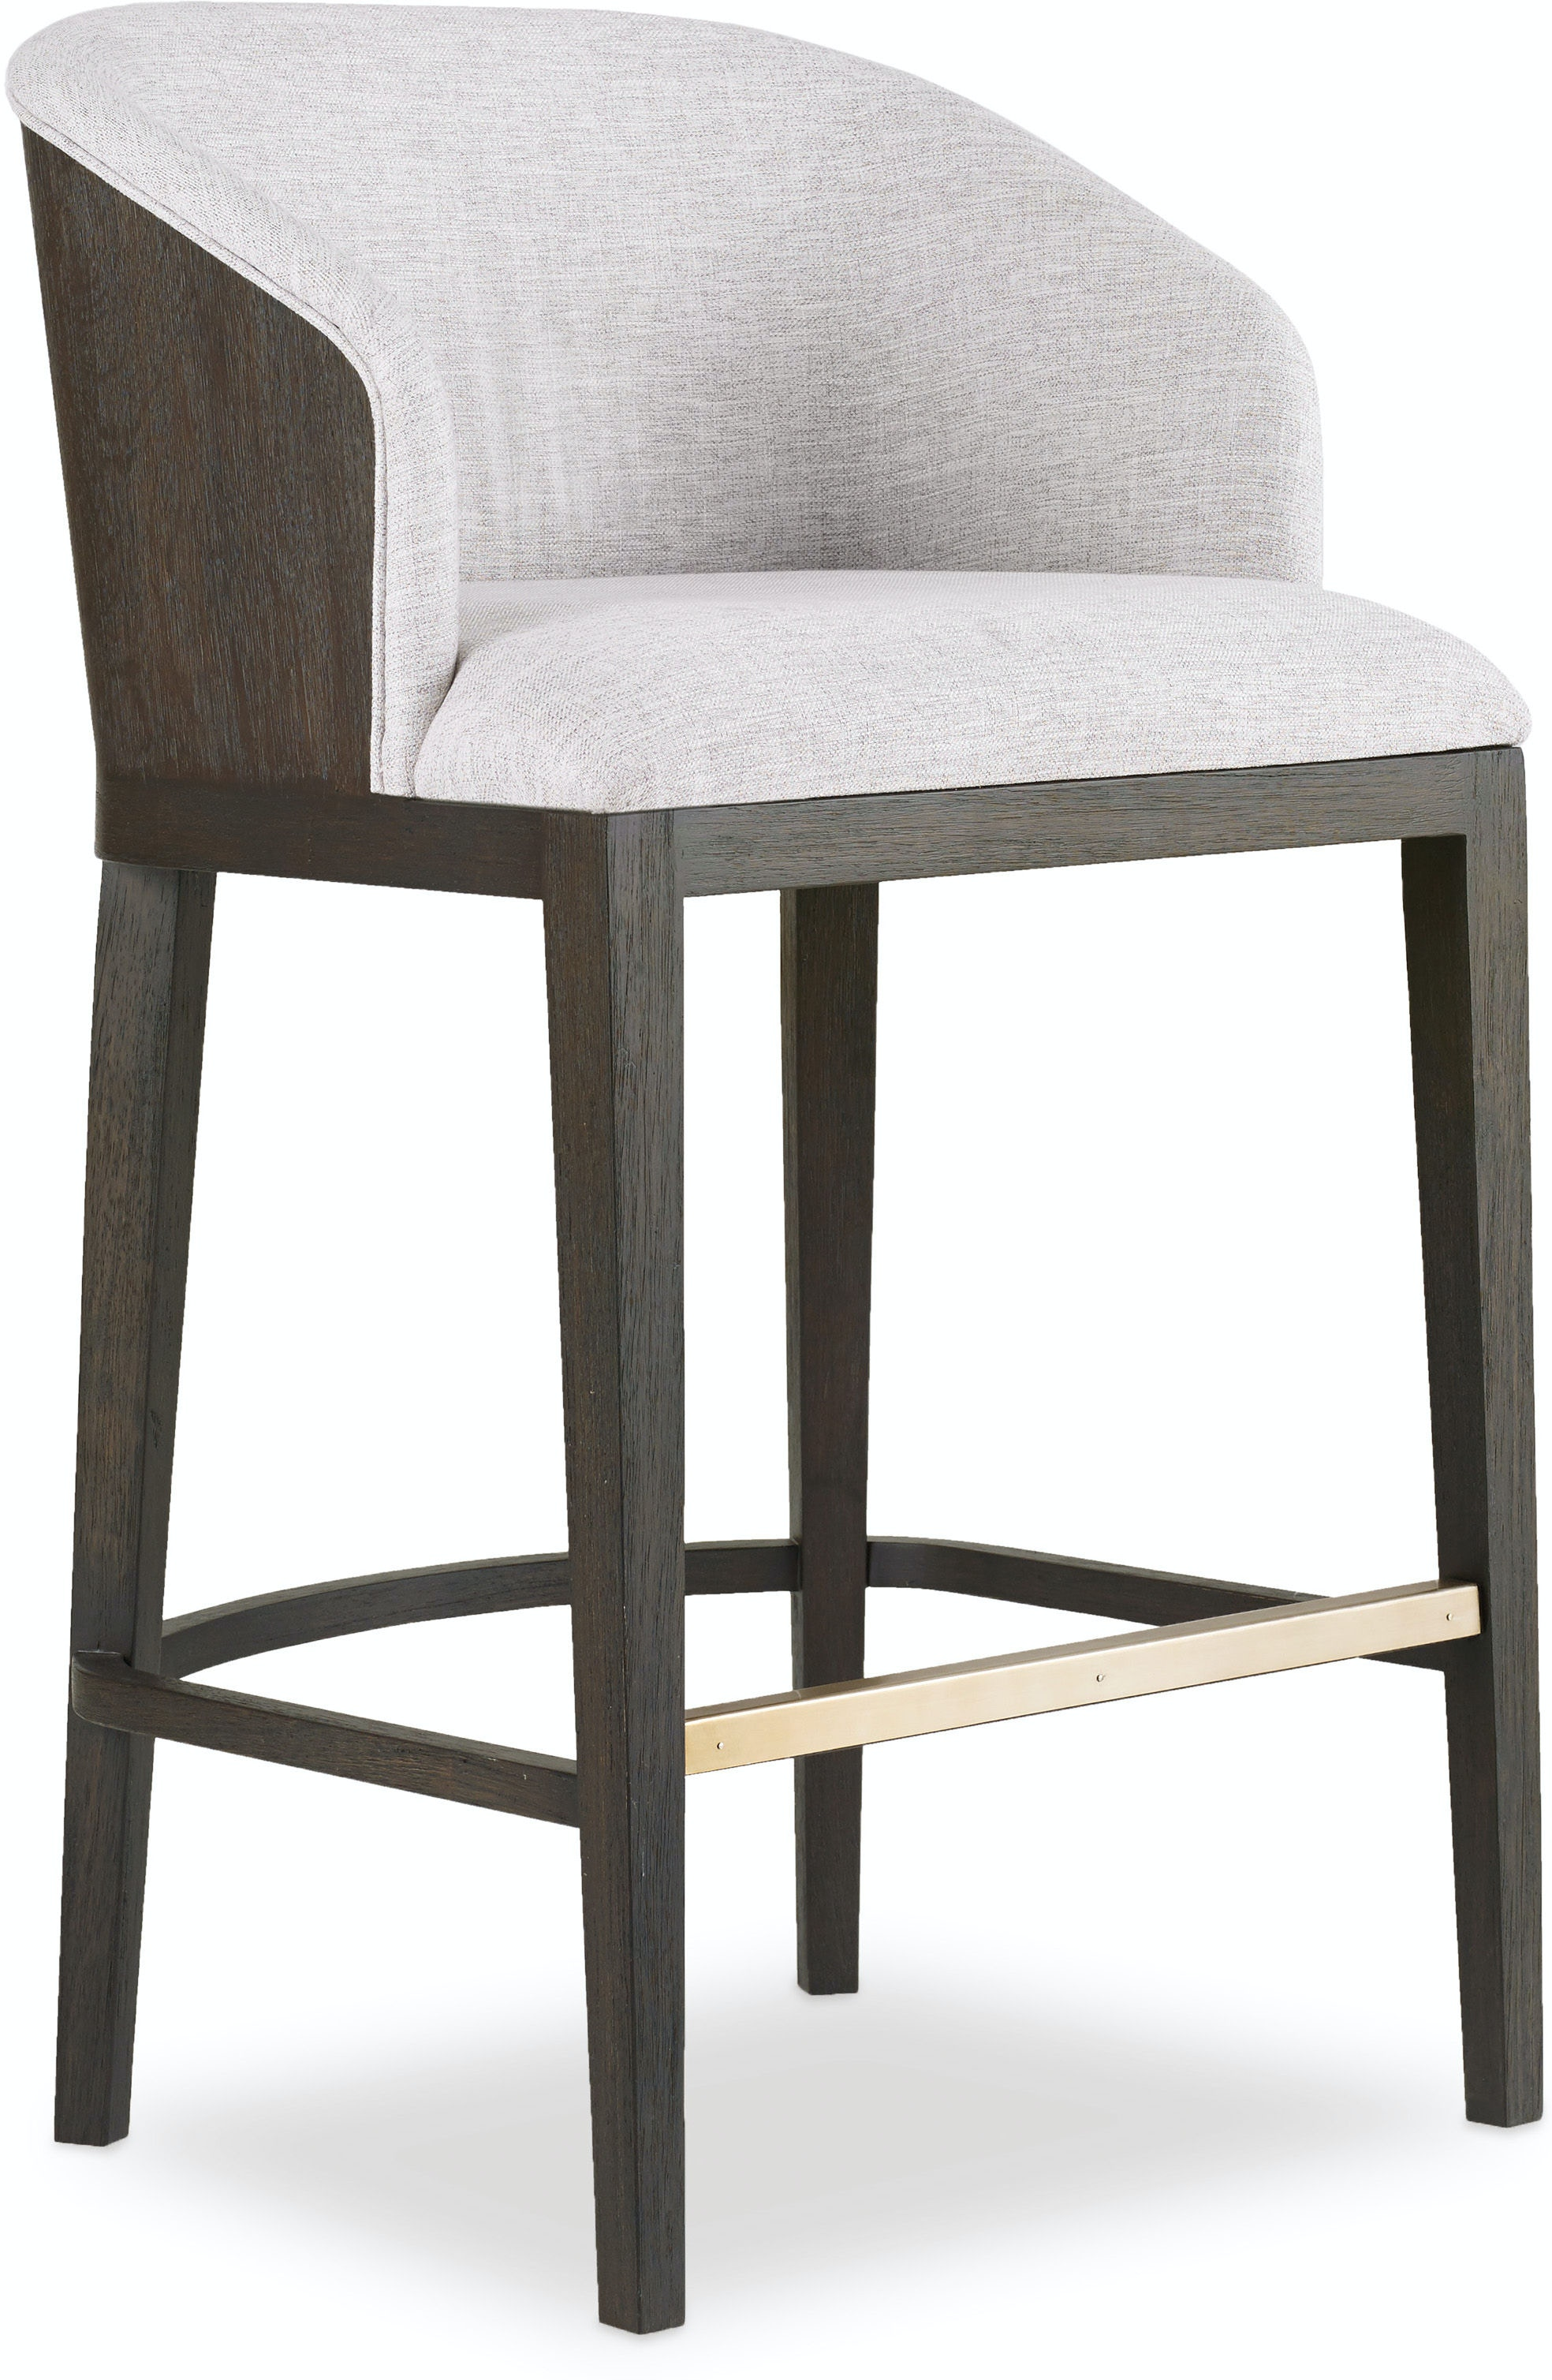 Hooker Furniture Dining Room Curata Upholstered Bar Stool